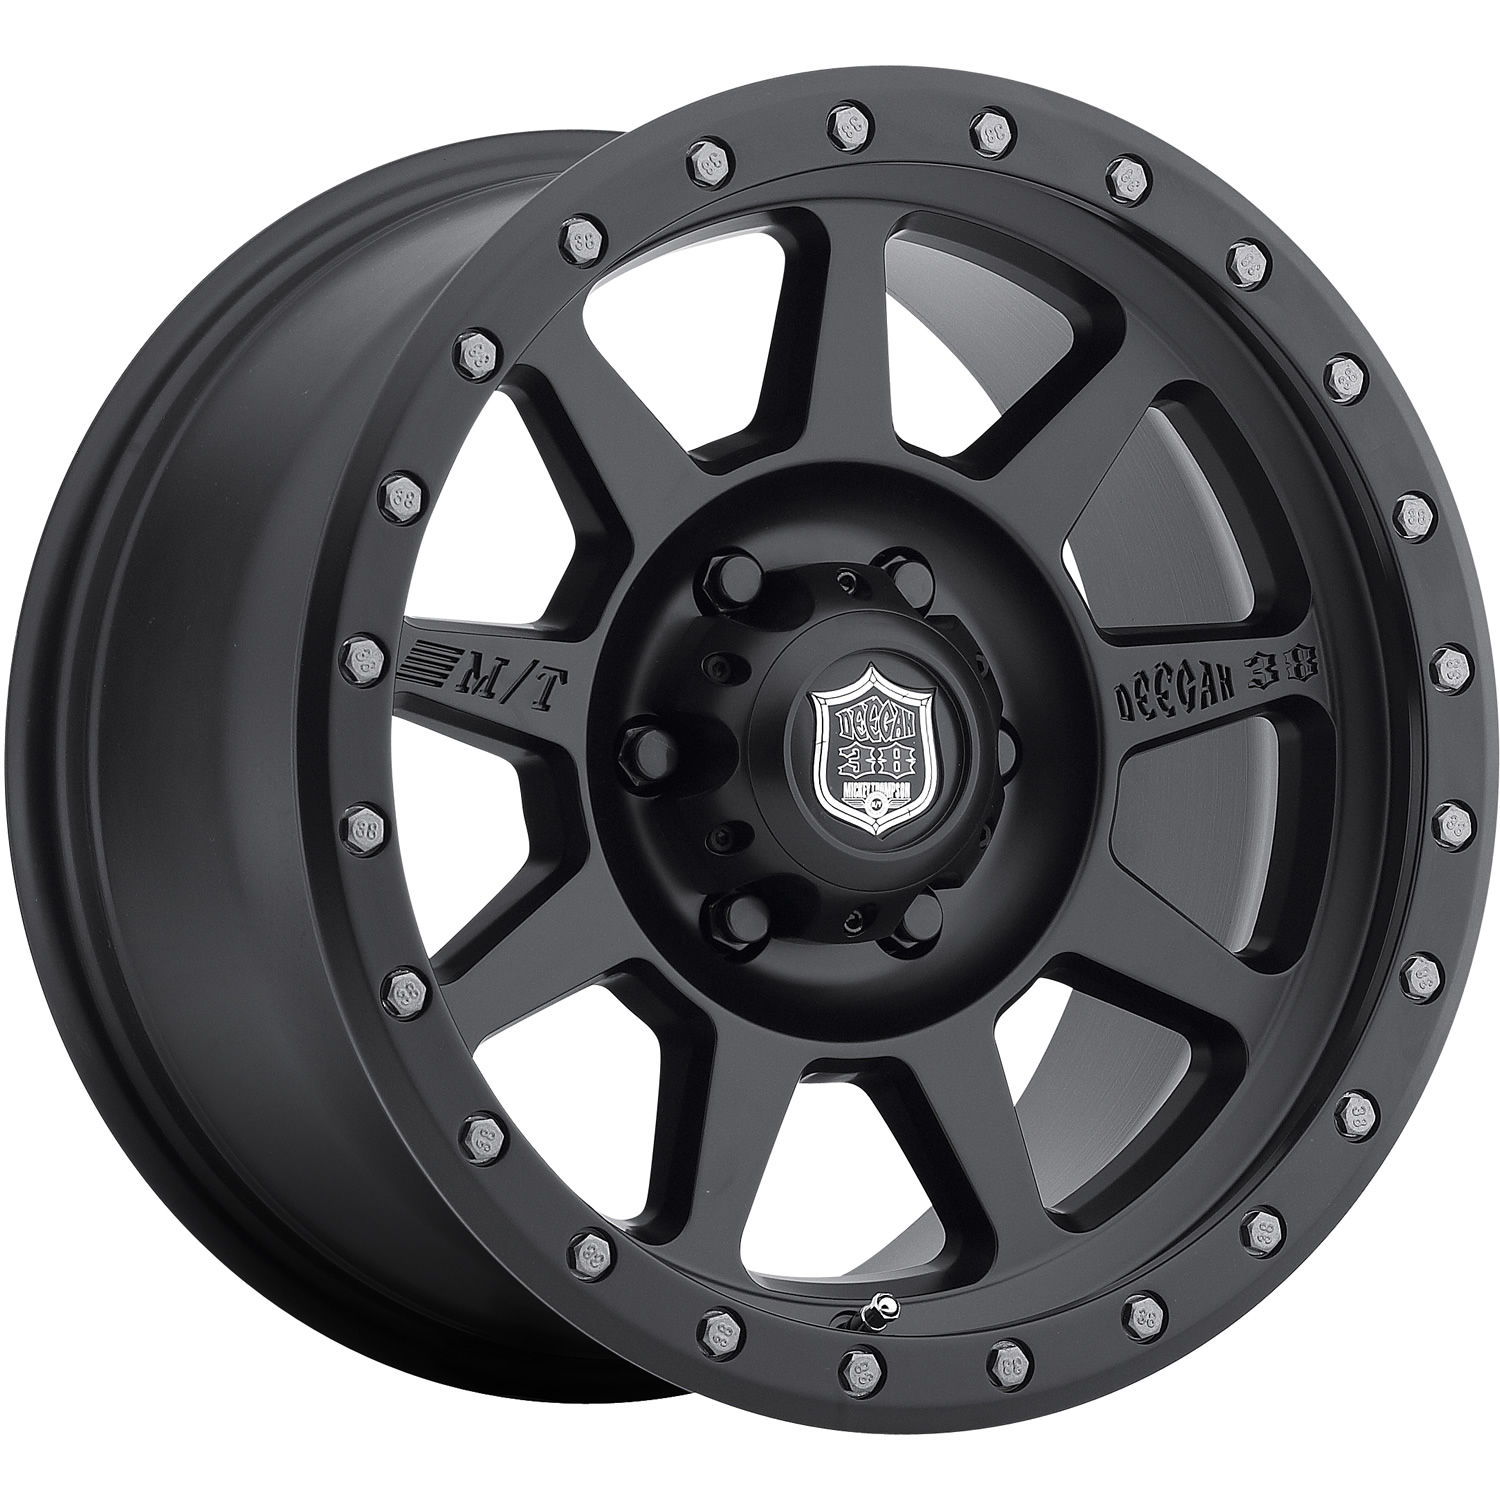 Mickey Thompson Deegan 38 Pro 4 16x8 0mm | 90000024771